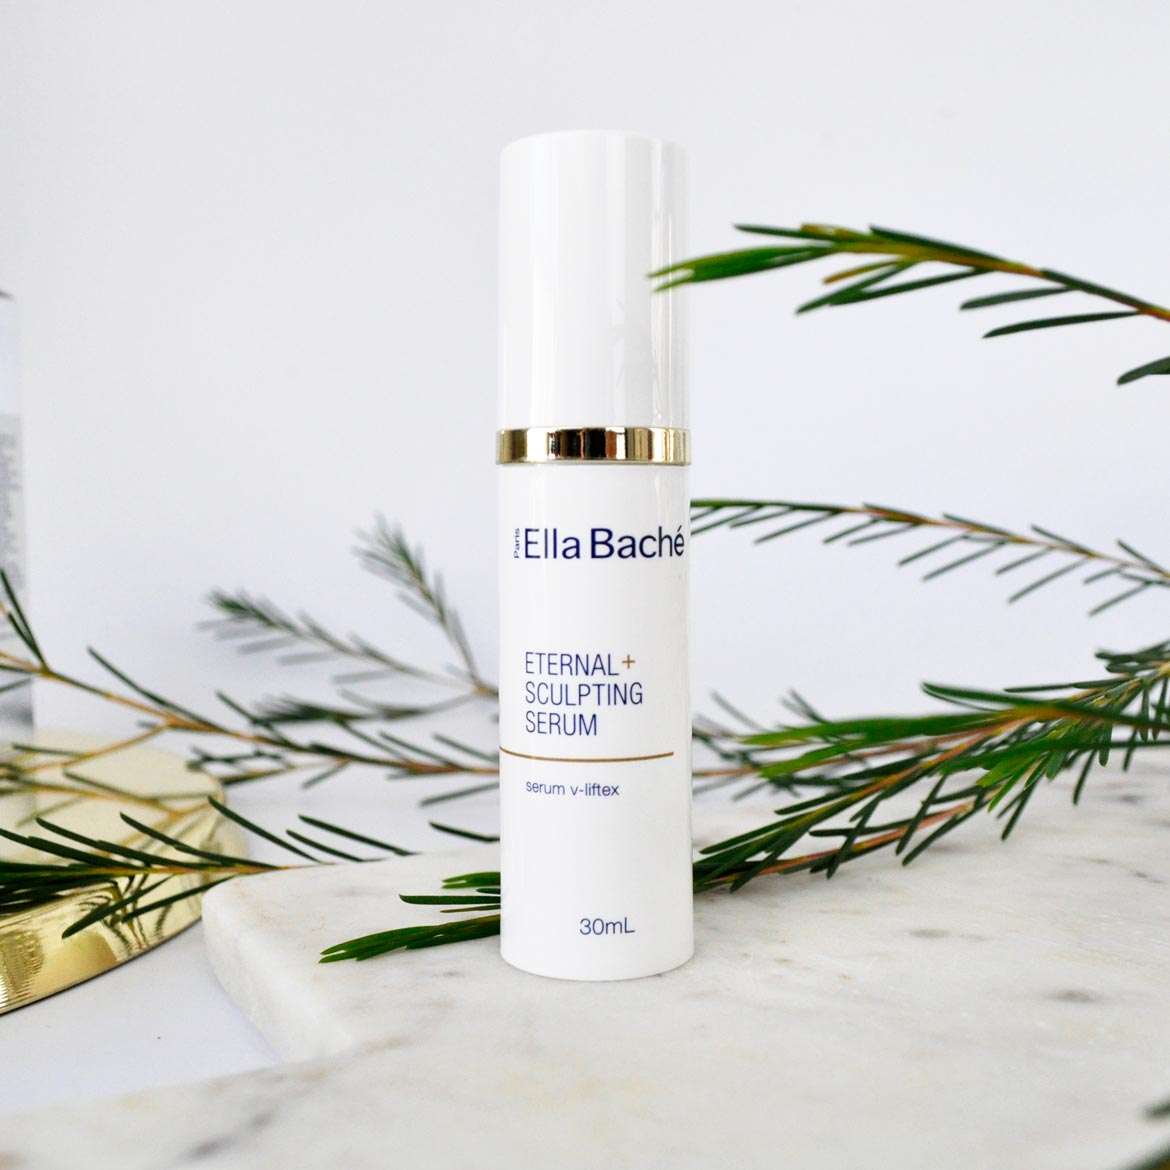 Ella Baché Eternal+ Sculpting Serum